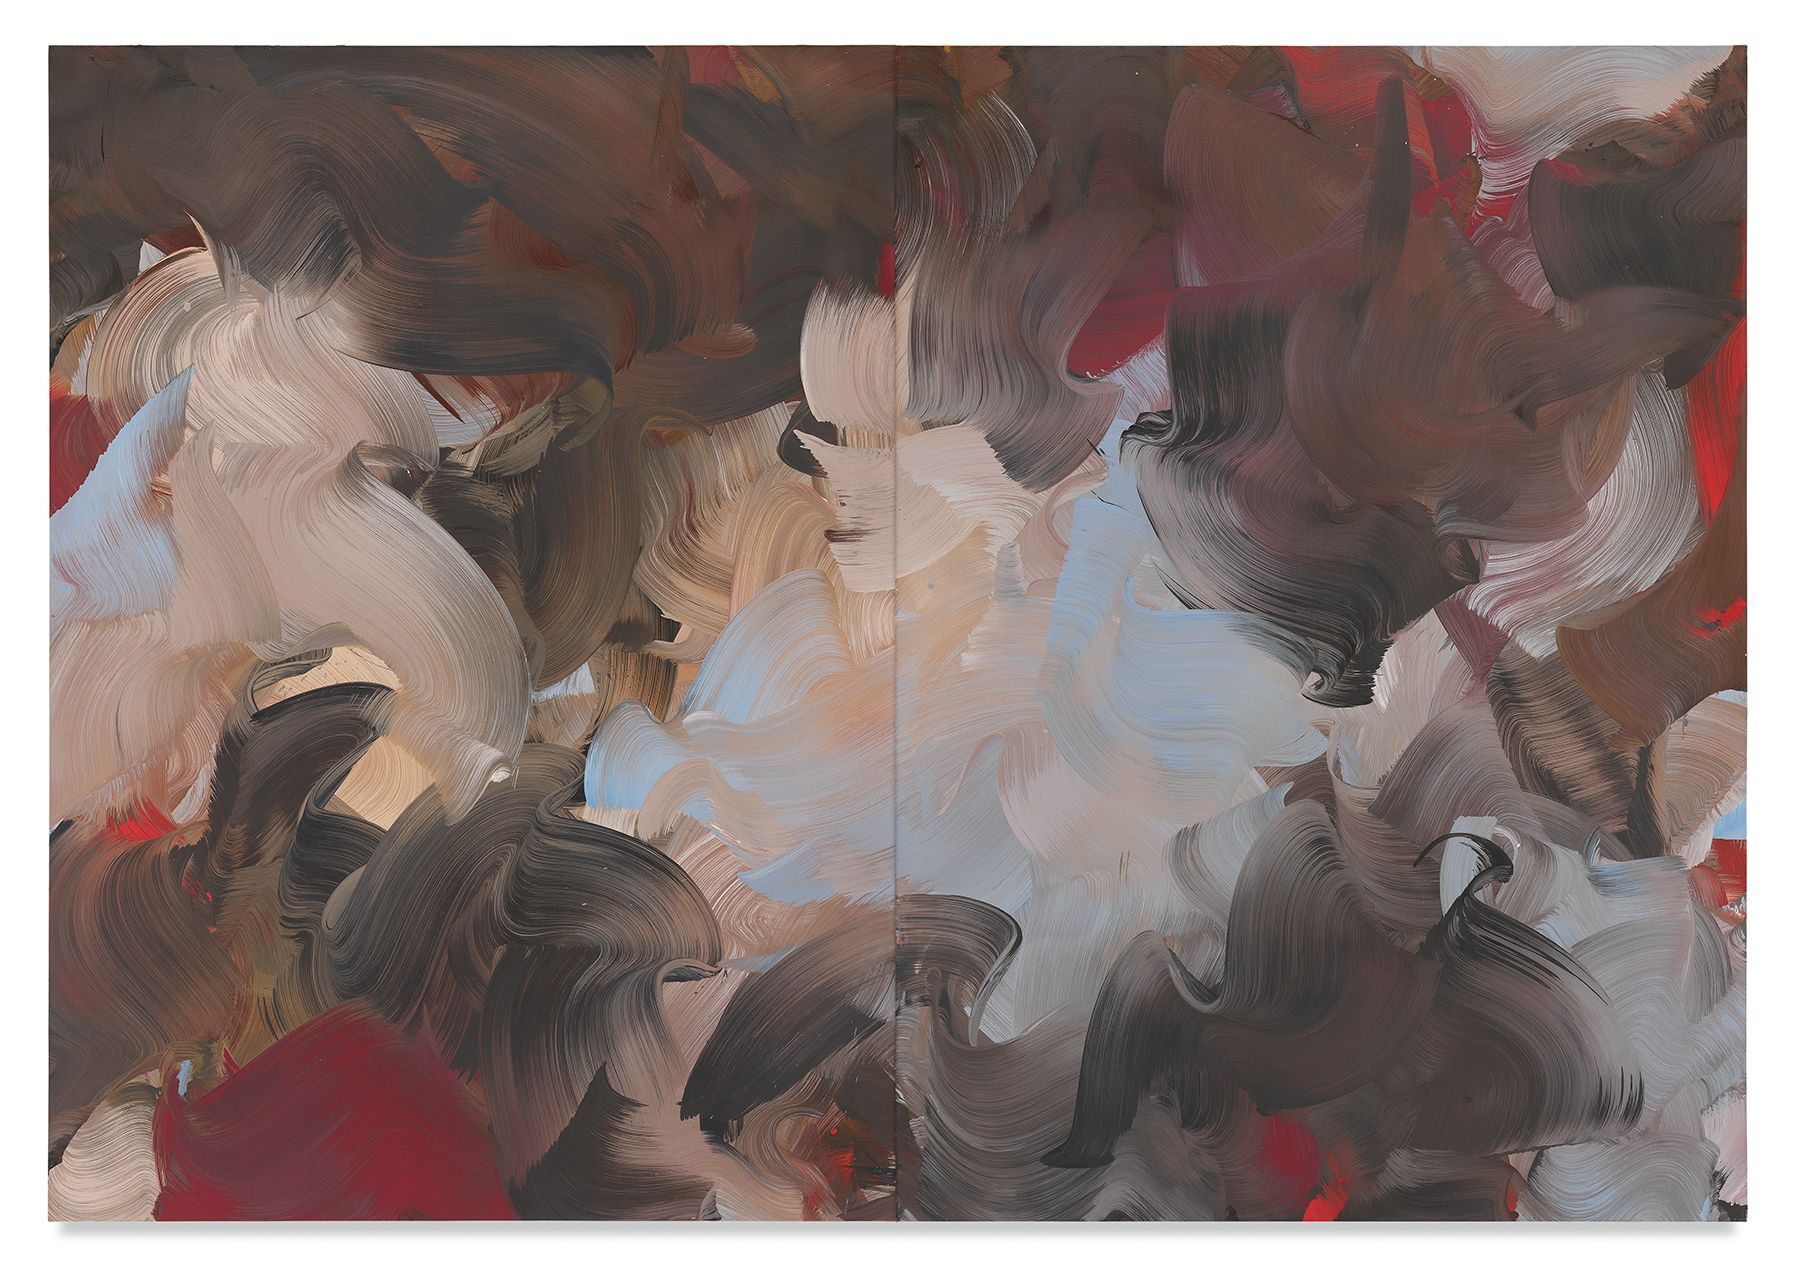 as below, 2018,Oil on canvas,71 x 102 inches,180.3 x 129.5 cm,MMG#30265